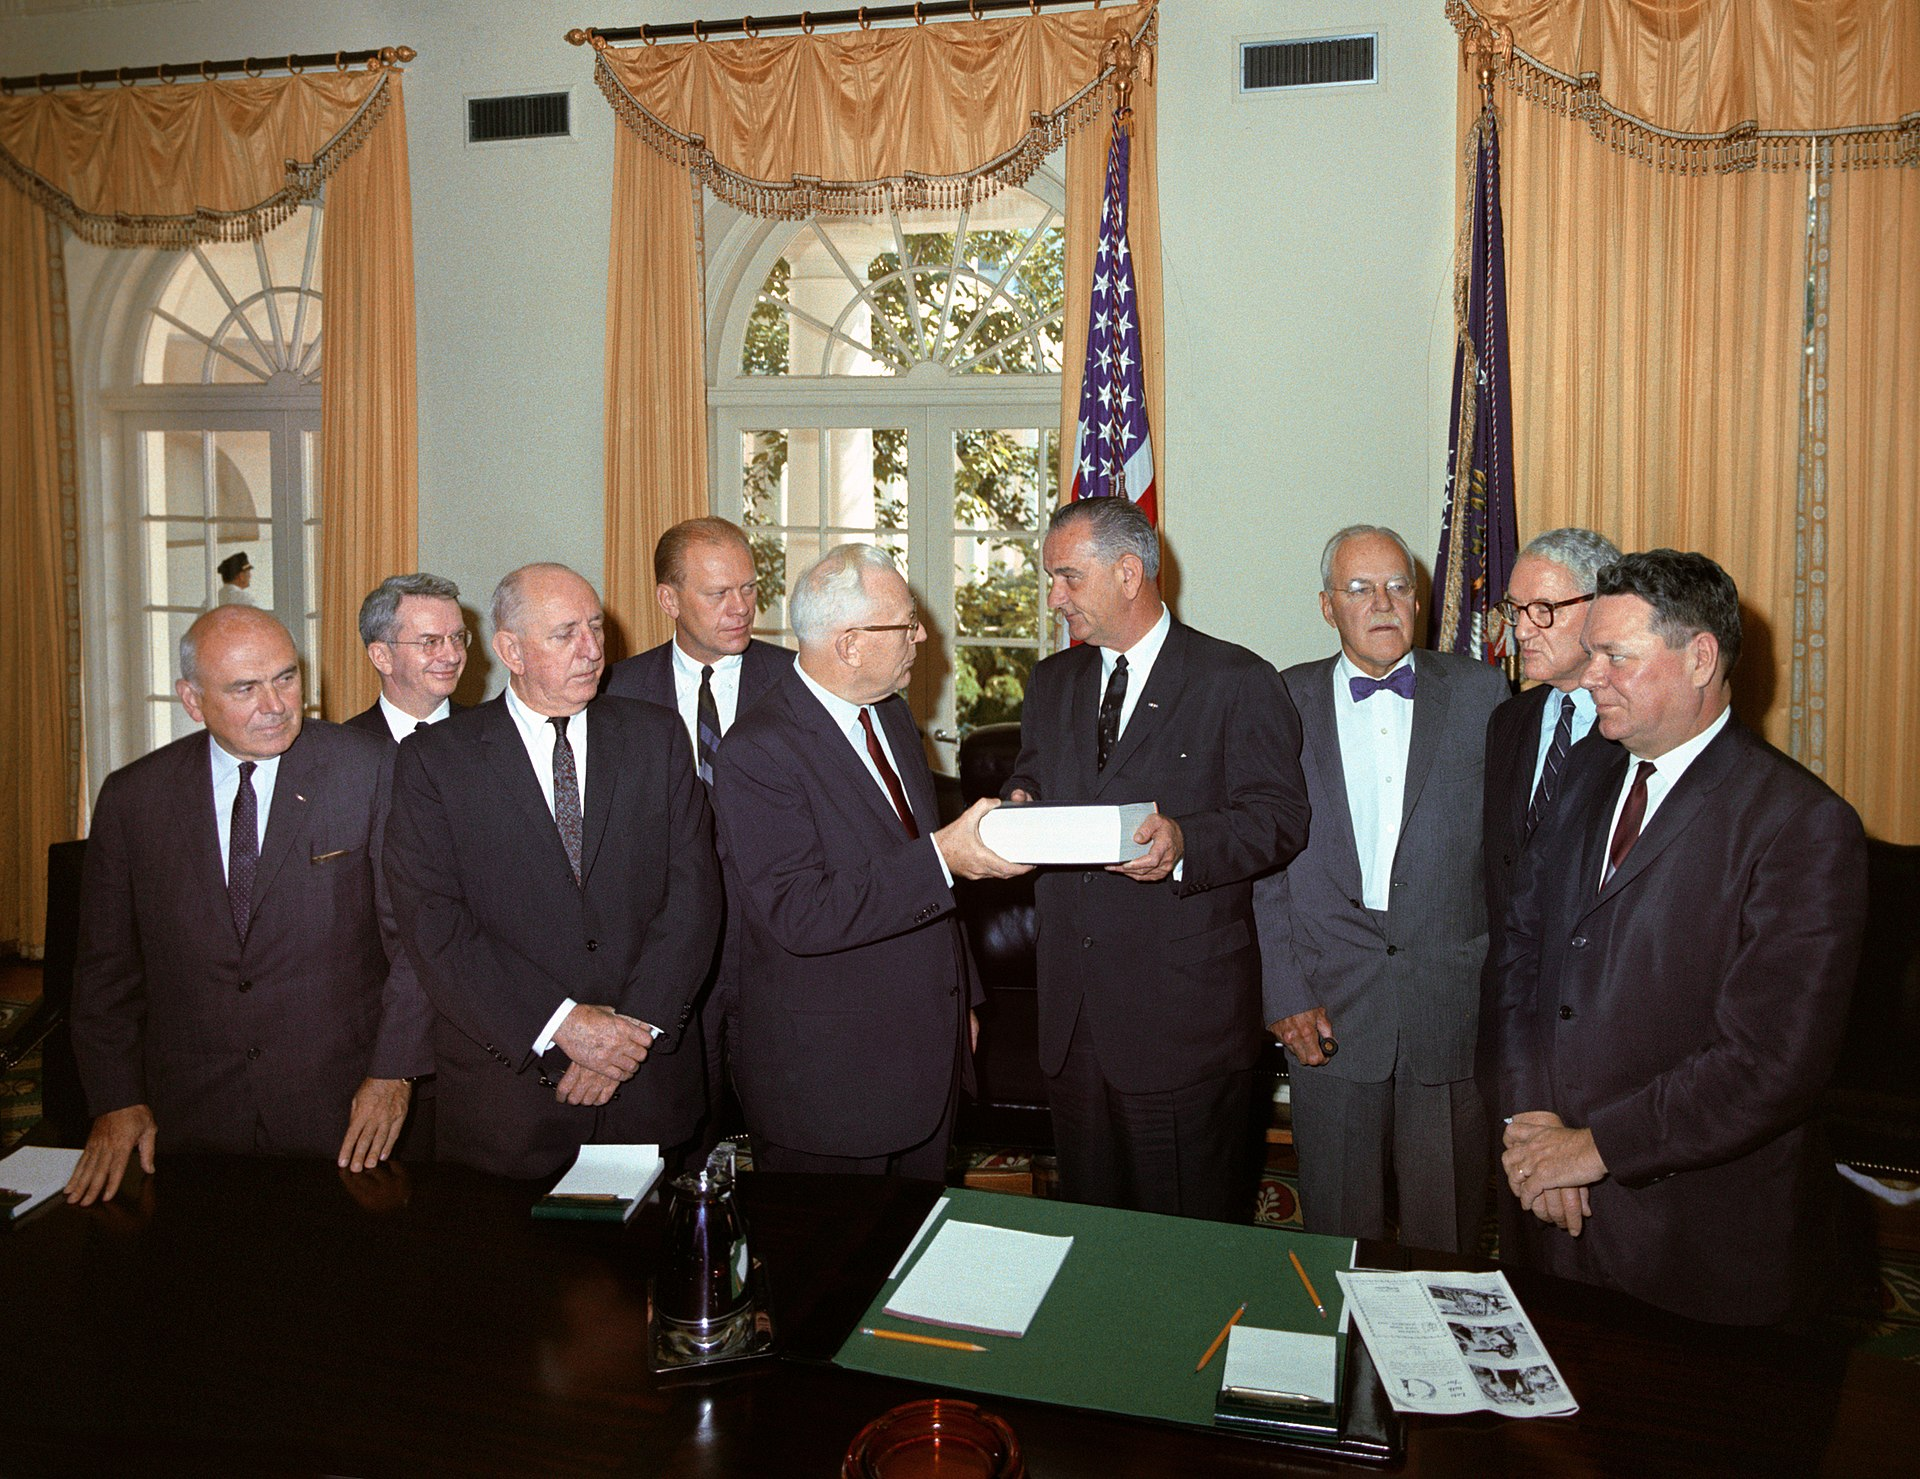 The Warren Commission presents its report to President Johnson.